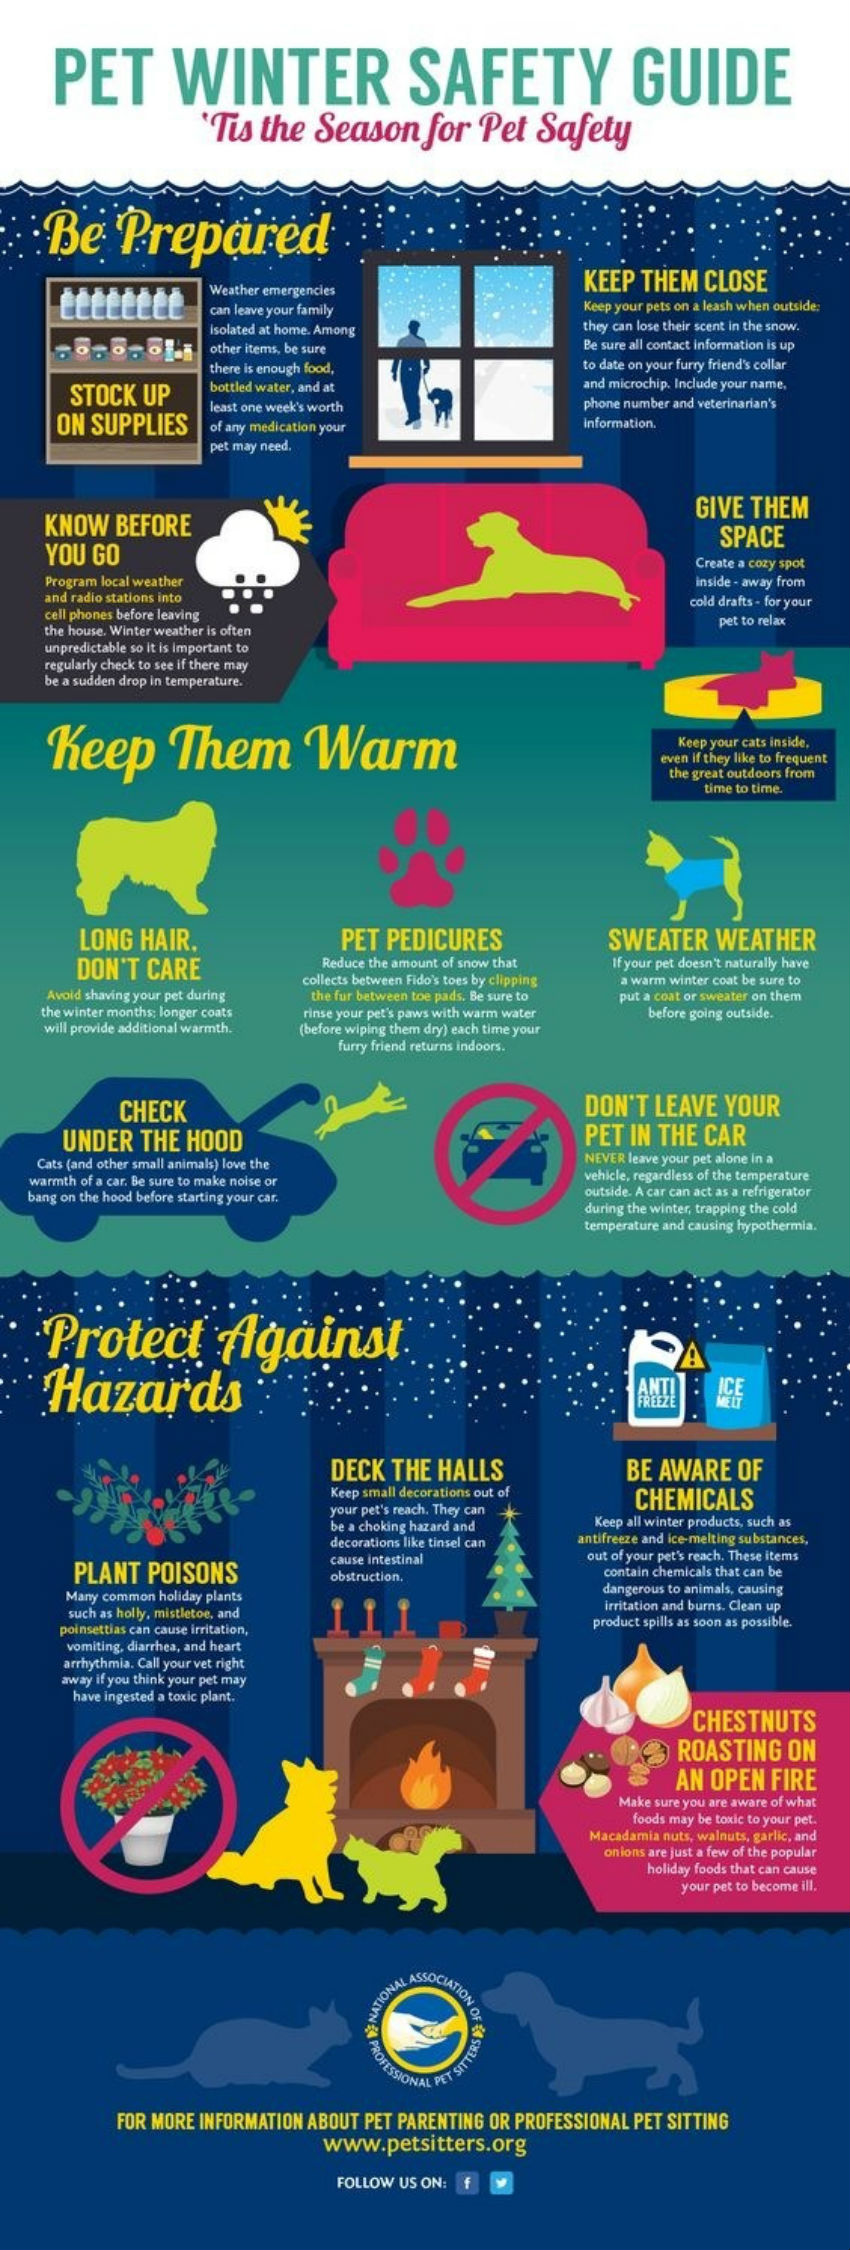 This is pet safety season! Image Source: Pinterest